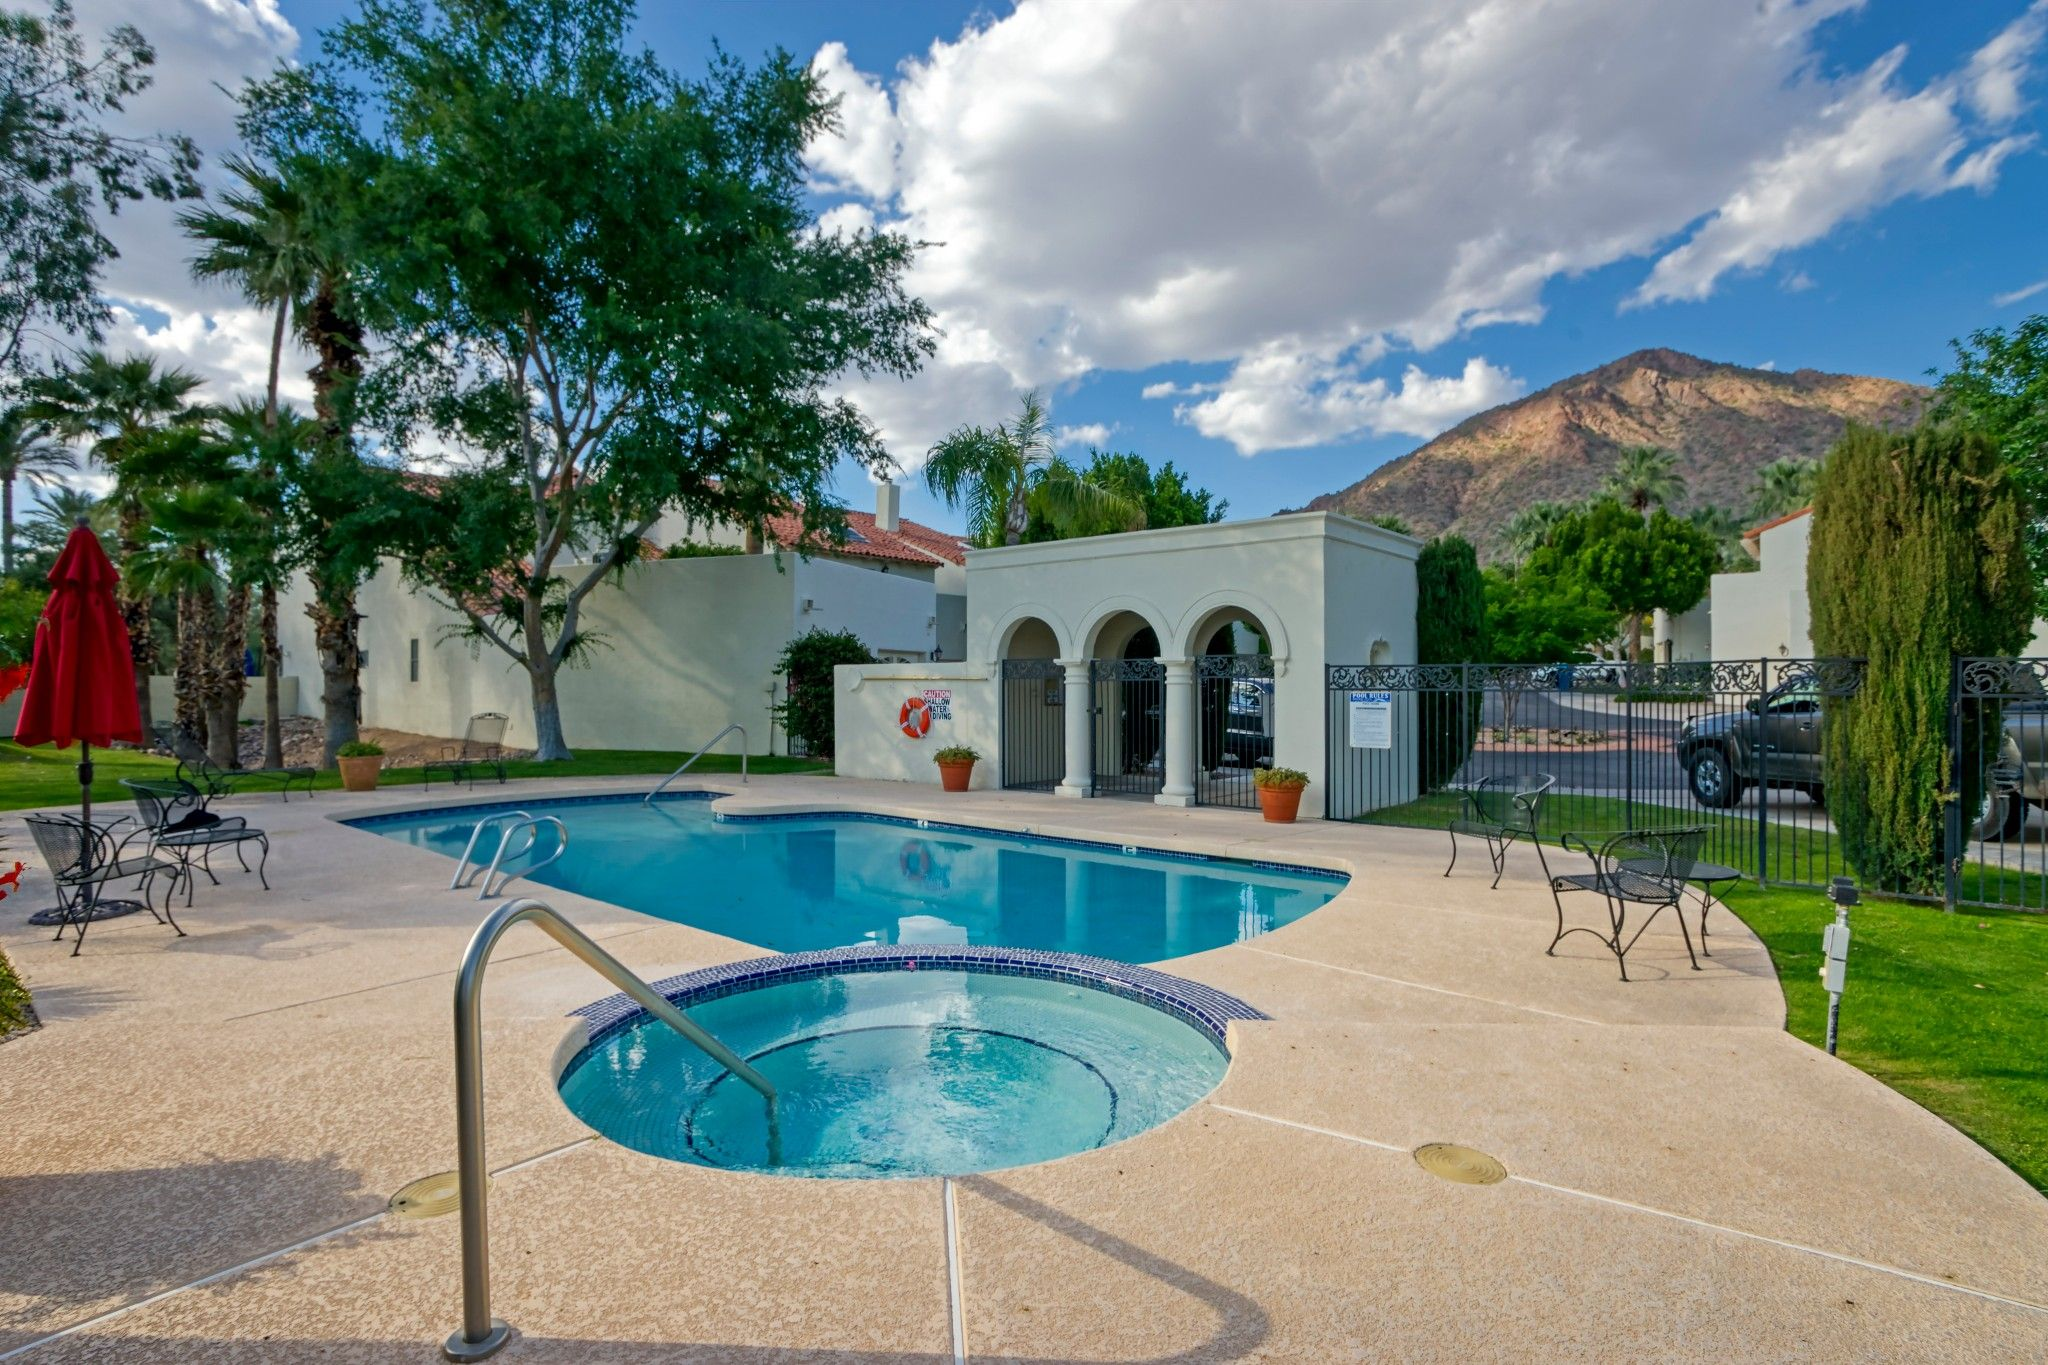 Photo 5: Photos: 4551 N 52nd Place in Phoenix: Arcadia Condo for sale : MLS®# 6246268